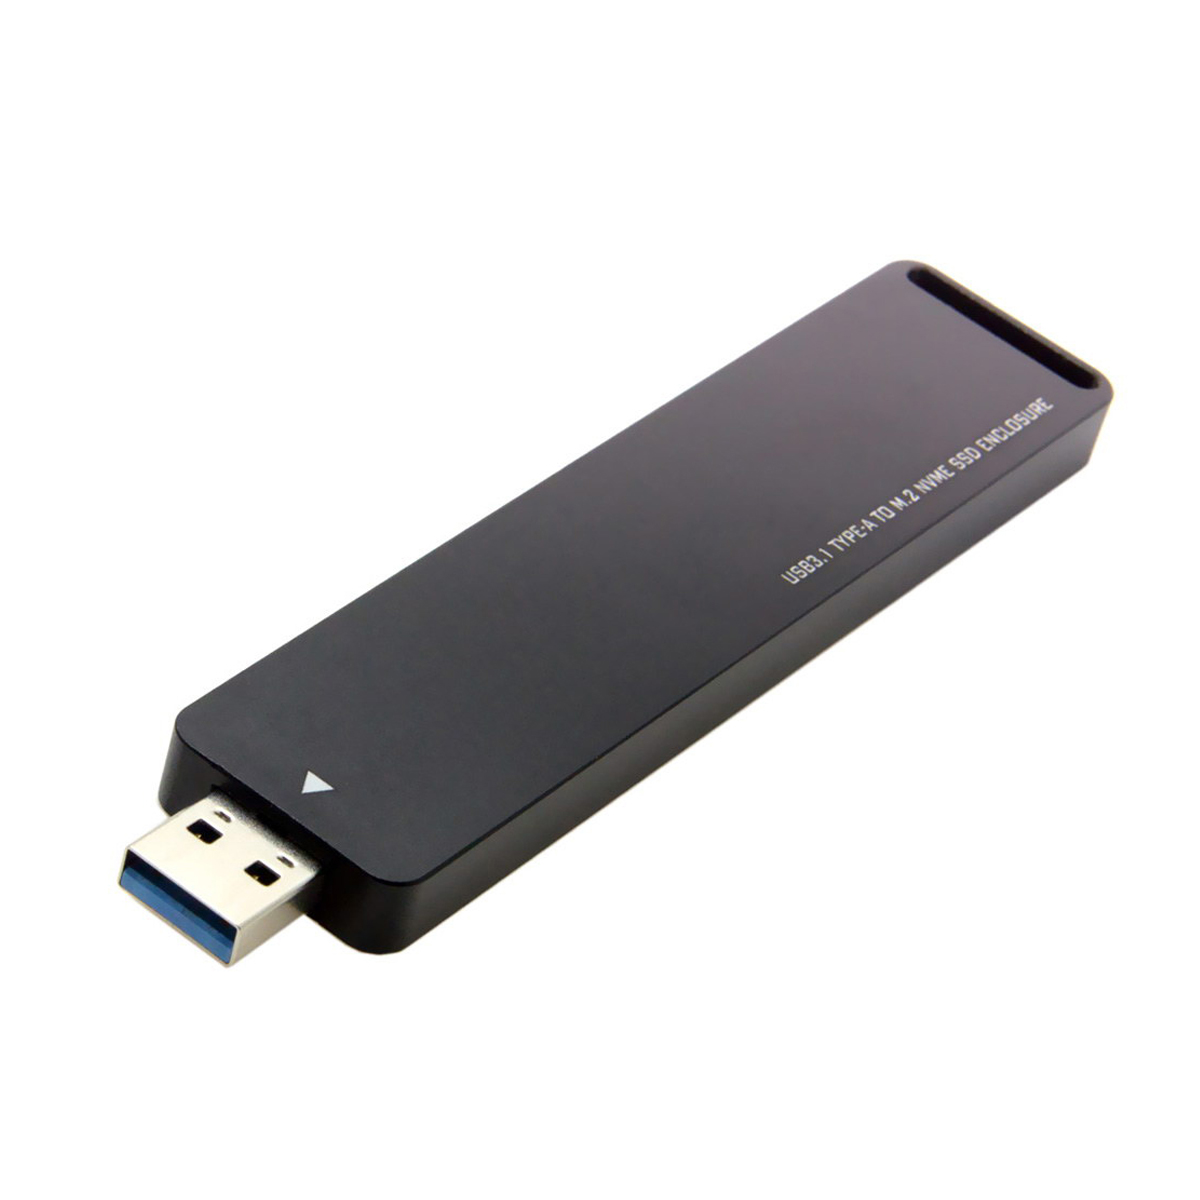 SSD Case NVME To USB Adapter 10 Gbps Usb 3.1 Gen 2 M.2 PCIE SSD To Type A Card No Cable Needed USB To M2 Solid State Drive Key M